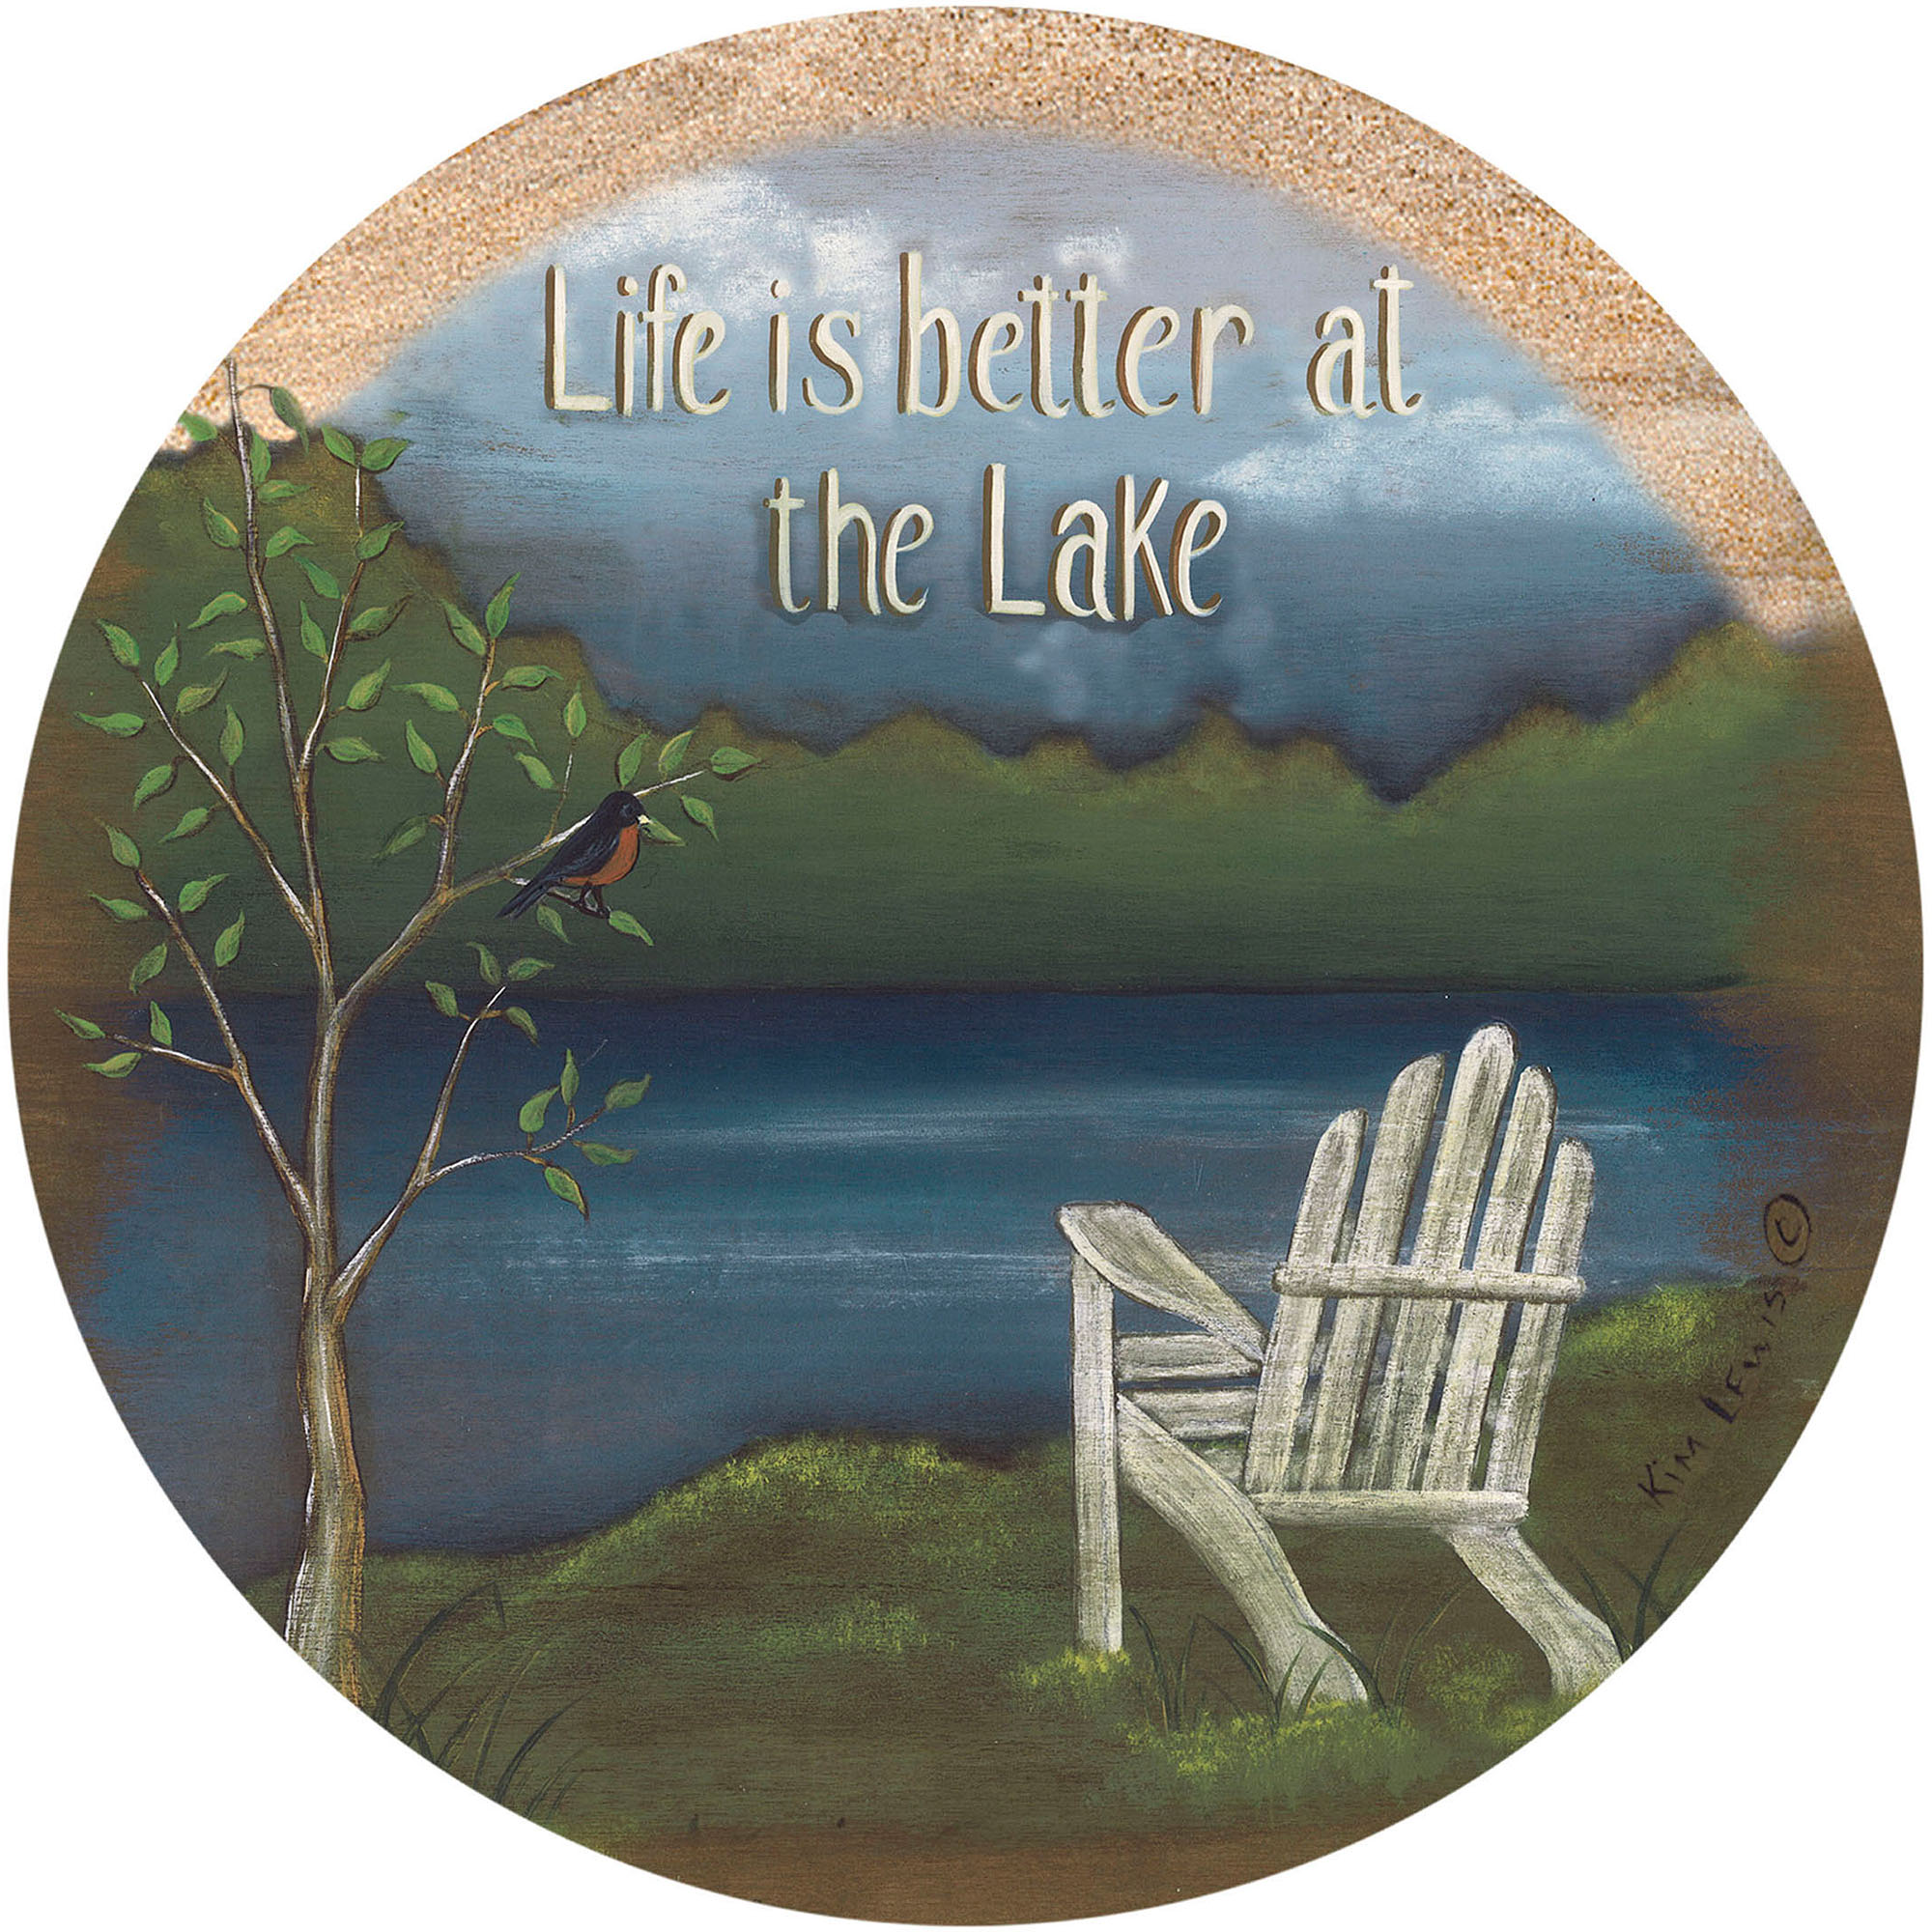 Thirstystone Drink Coasters Set, Life at the Lake